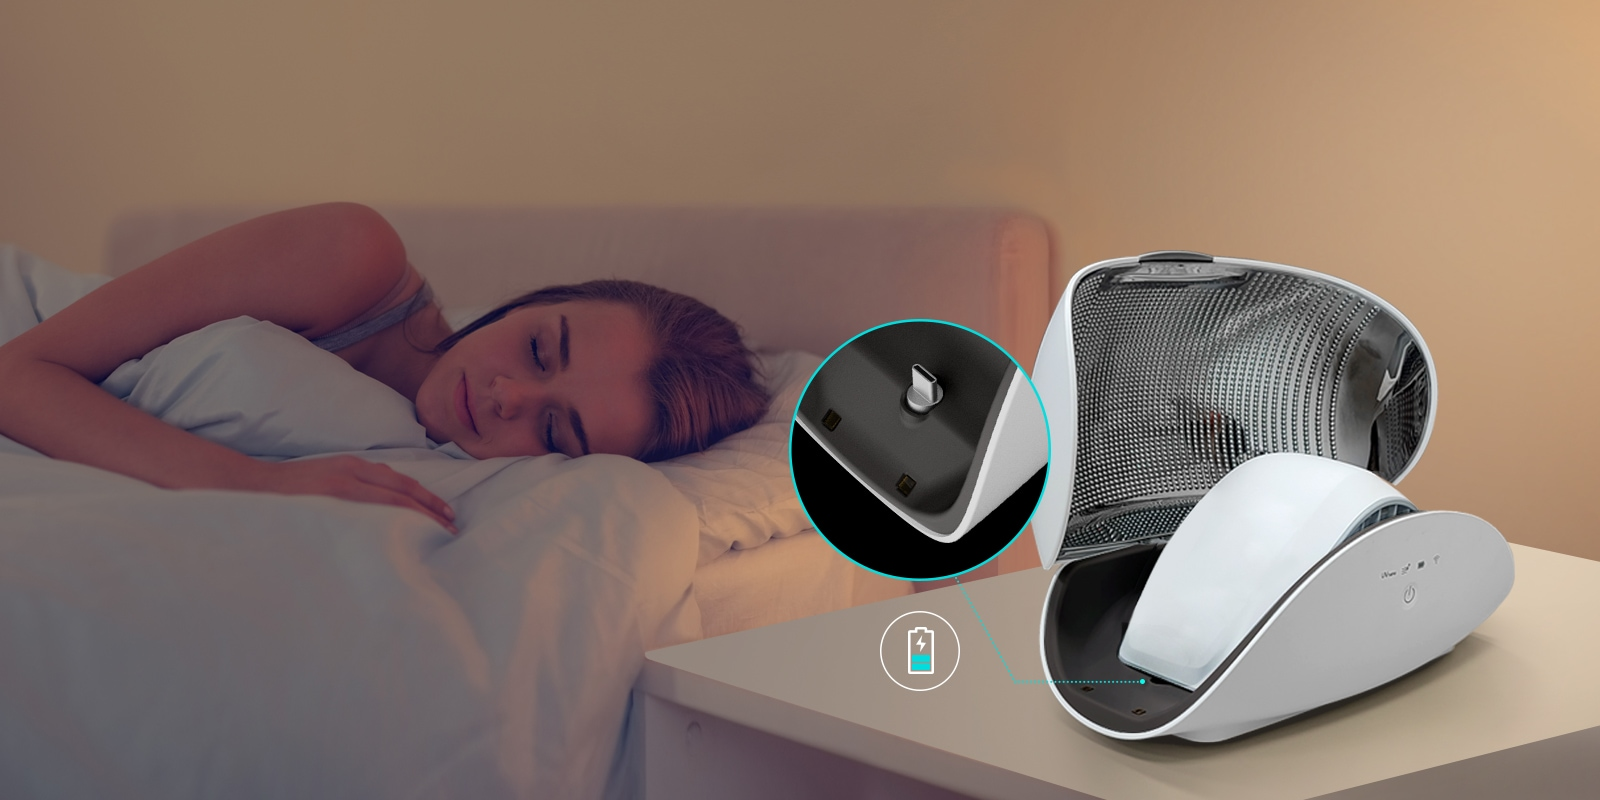 A women sleeps on a bed in the background. A drained battery icon is near her. The Puricare Mask sits in the PuriCare Wearable Air Purifier Case which is also a charger. A magnified inset shows where the mask plugs into the case.